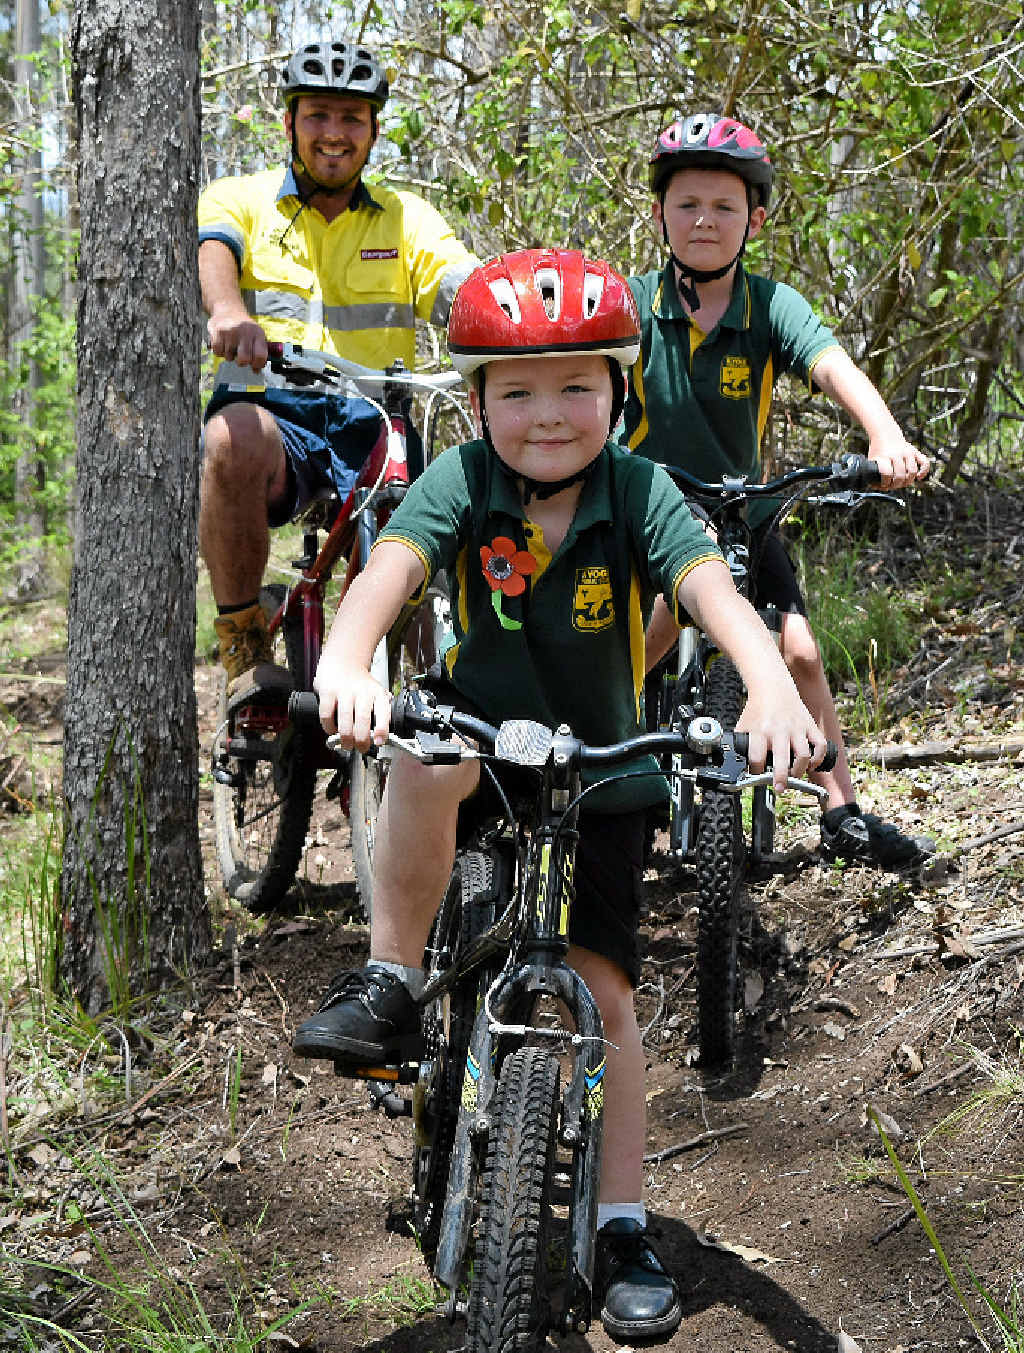 Six-year-old Kyogle local Ewan Wilkie testing out the first few metres of the new mountain bike trail network under construction in Boorabee State Forest, a short drive out of town, in front of brother Finn, 8, and dad Reid. Photo: Hamish Broome / The Northern Star